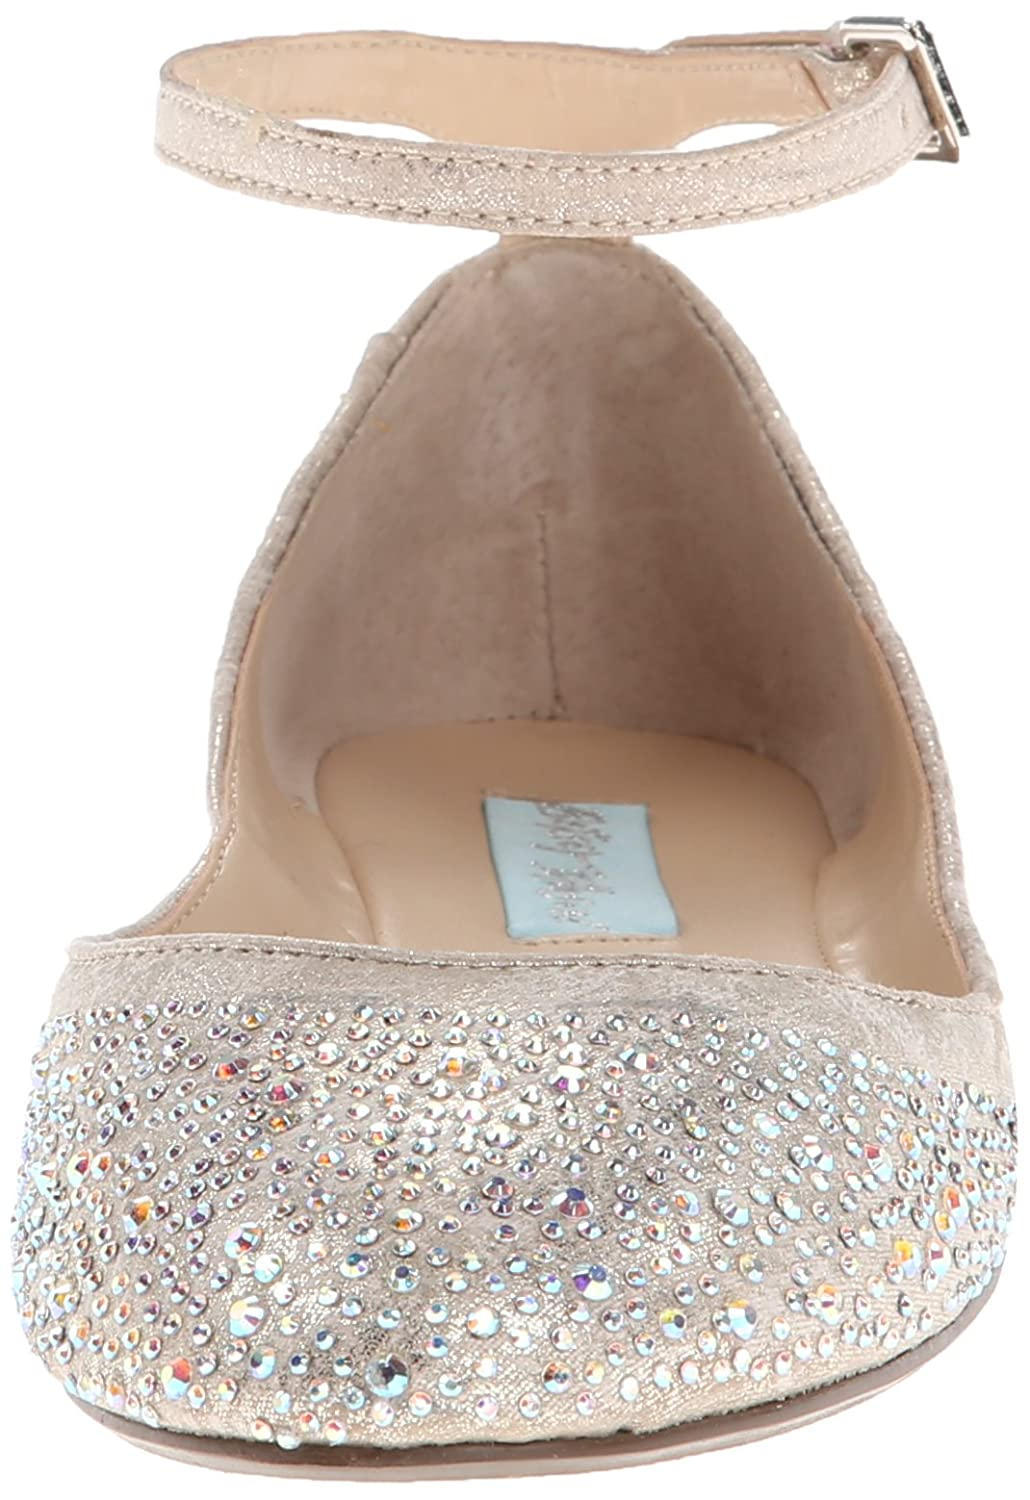 41762b37767b ... Blue SB by Betsey Johnson Women s SB Blue Joy Ballet Flat B00E93ZD4W  7.5 M US